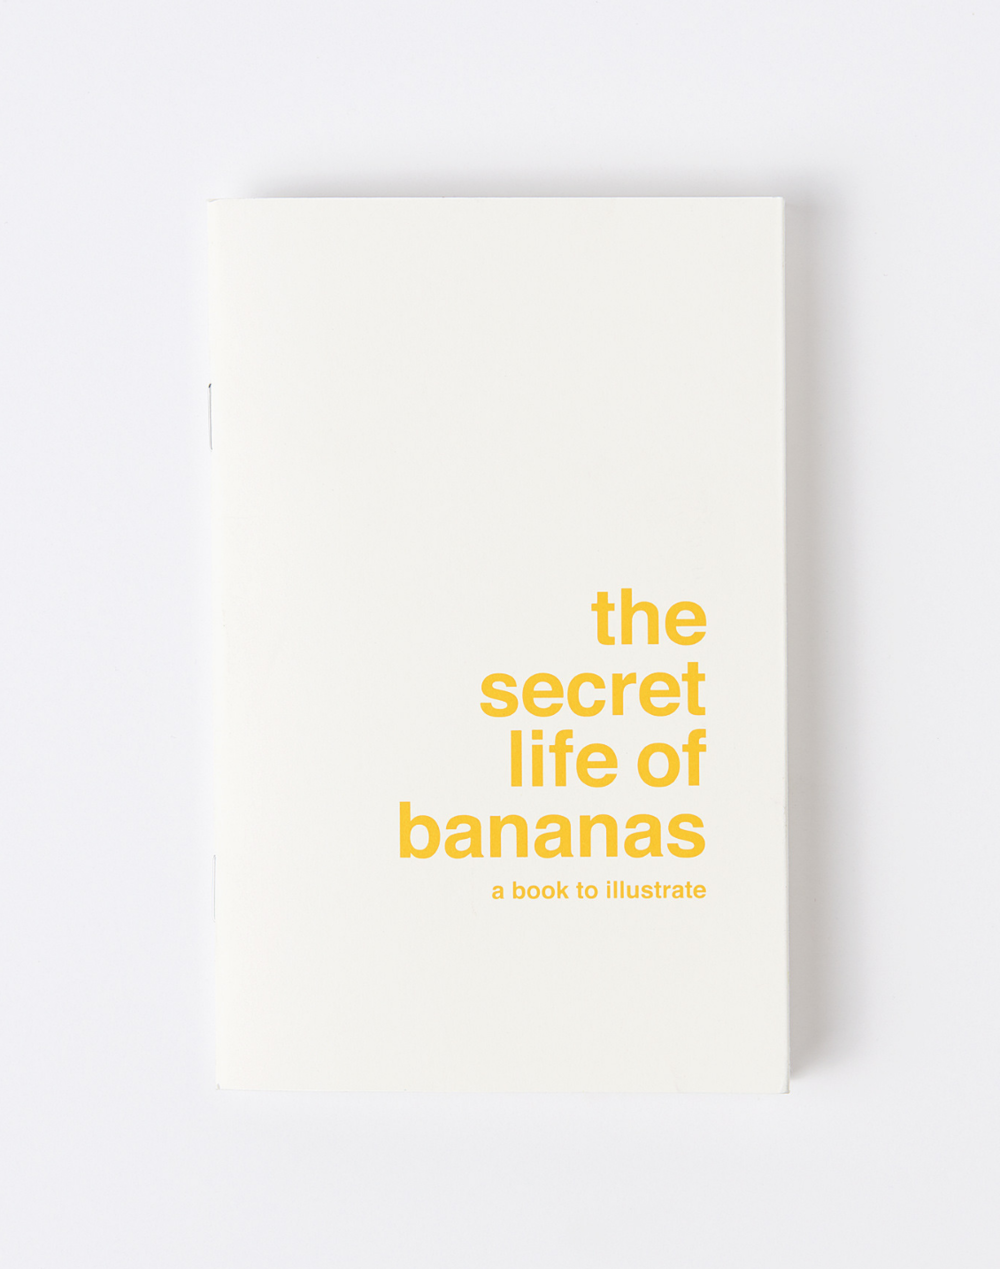 THE SECRET LIFE OF BANANAS COVET & LOU, $13 If you have a budding artist in the house, plenty of art supplies for winter car trips are a must. This book gives your child a topic and a story that they create the artwork for.